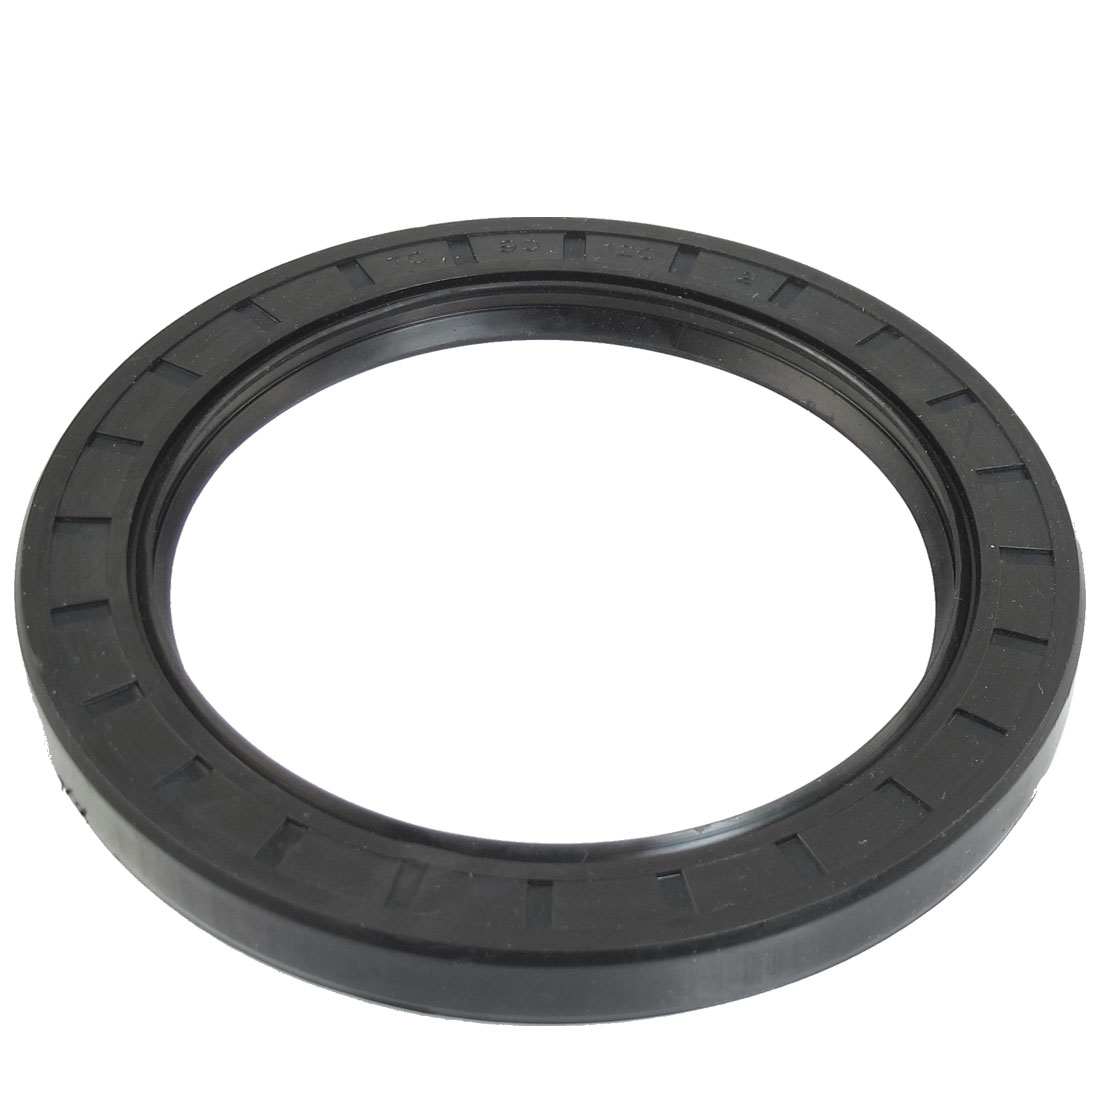 90mm x 120mm x 12mm Metric Double Lipped Rotary Shaft Oil Seal TC